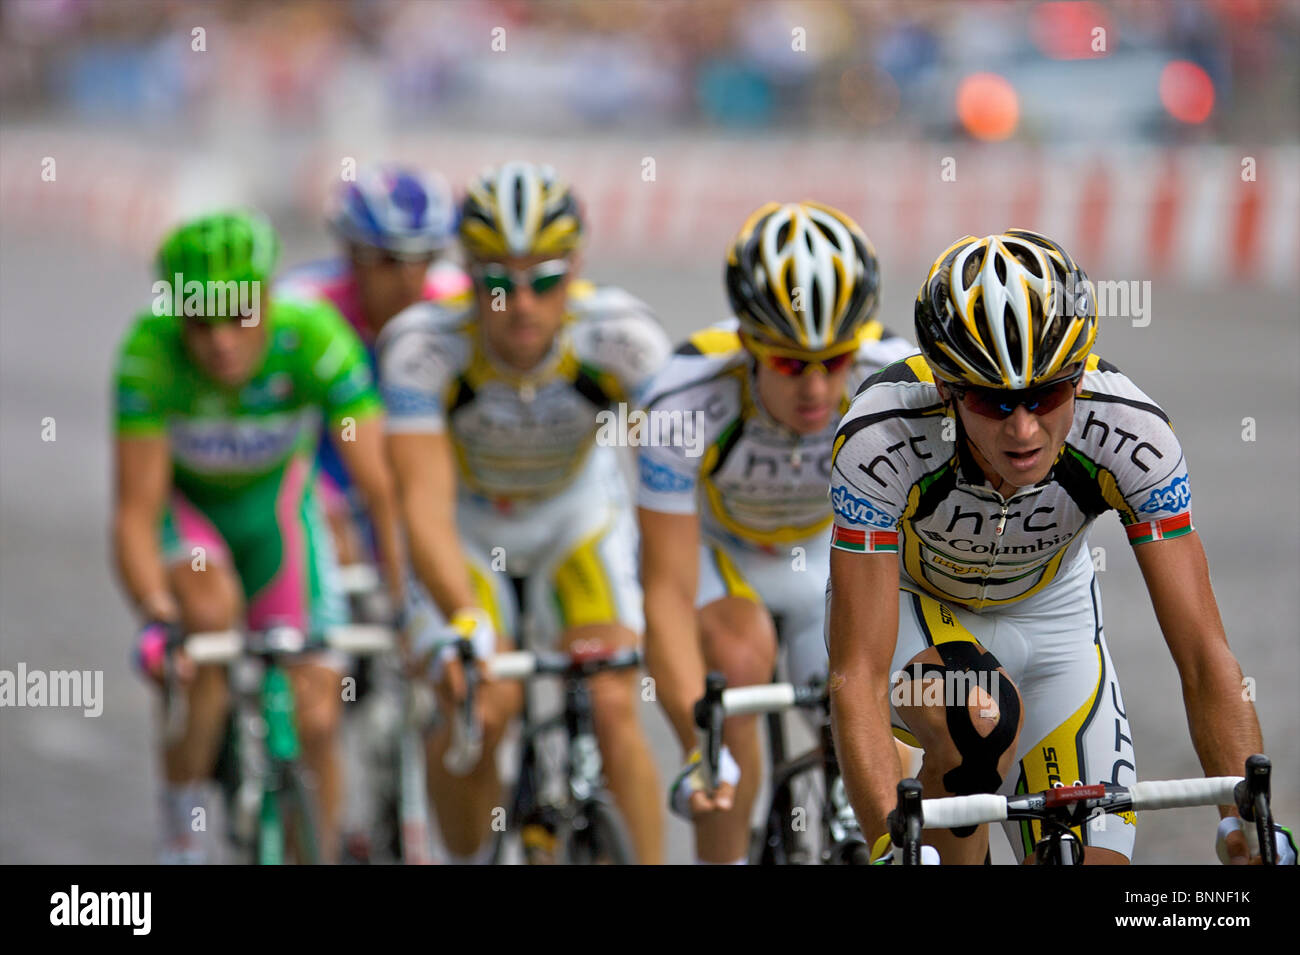 89490f723dd Professional cyclist Kanstantsin Sivtsov leads the HTC Columbia  professional cycling team on the Champs Elysees in Paris